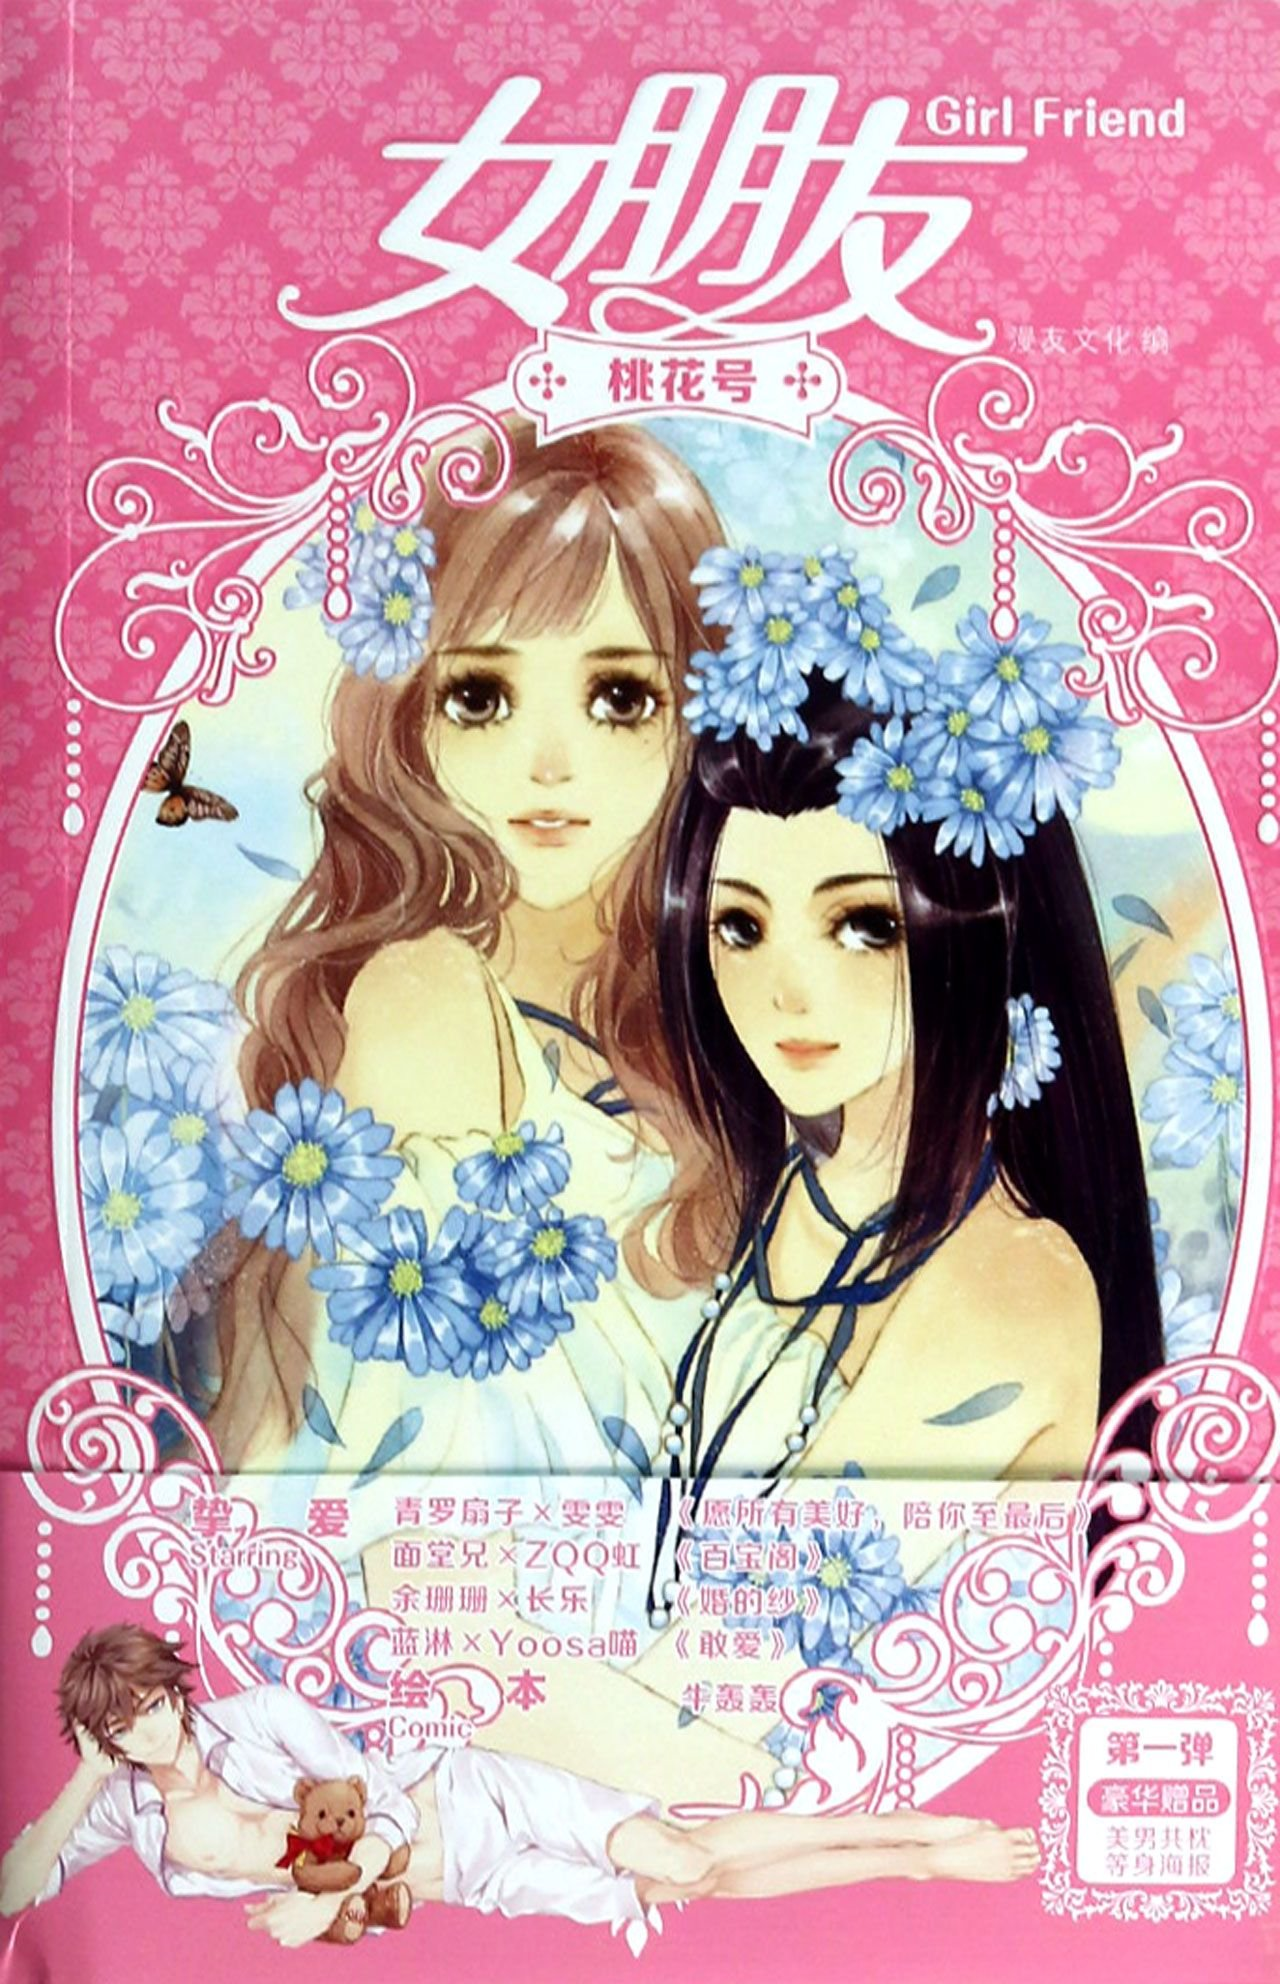 Read Online Girlfriend: Peach No.(Chinese Edition) PDF